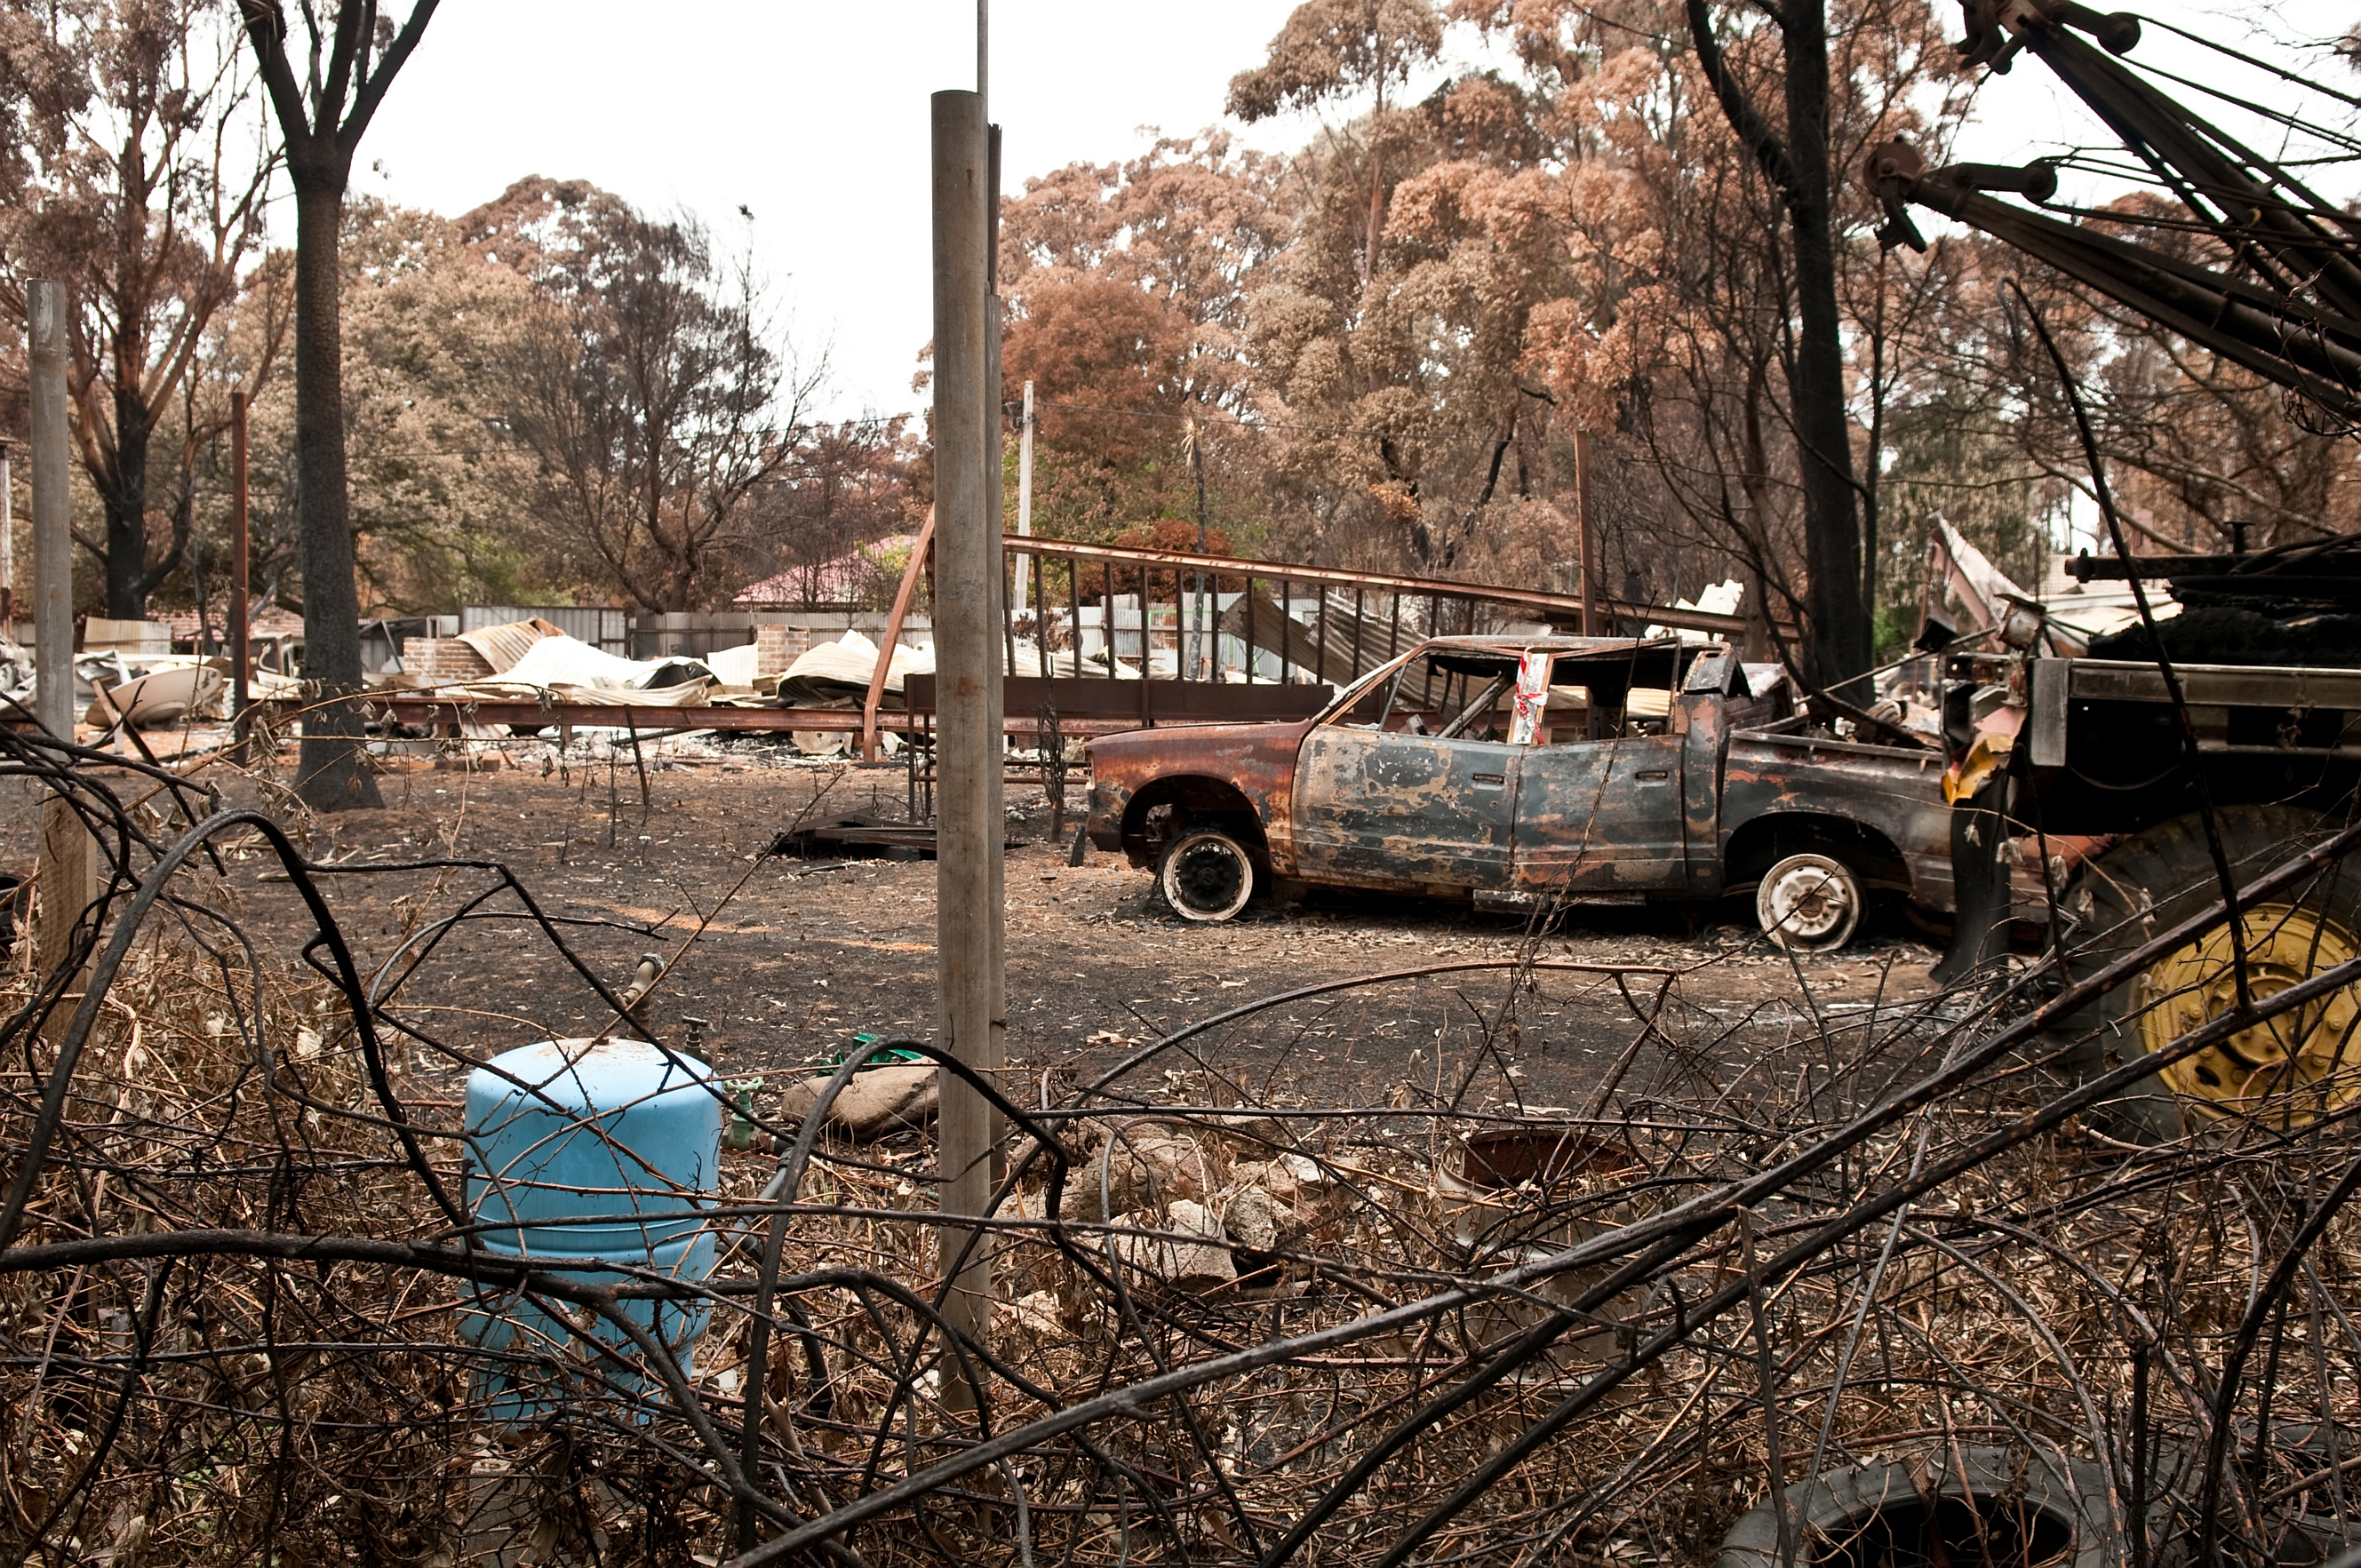 A destroyed property at Kinglake after the Black Saturday bushfires in 2009.